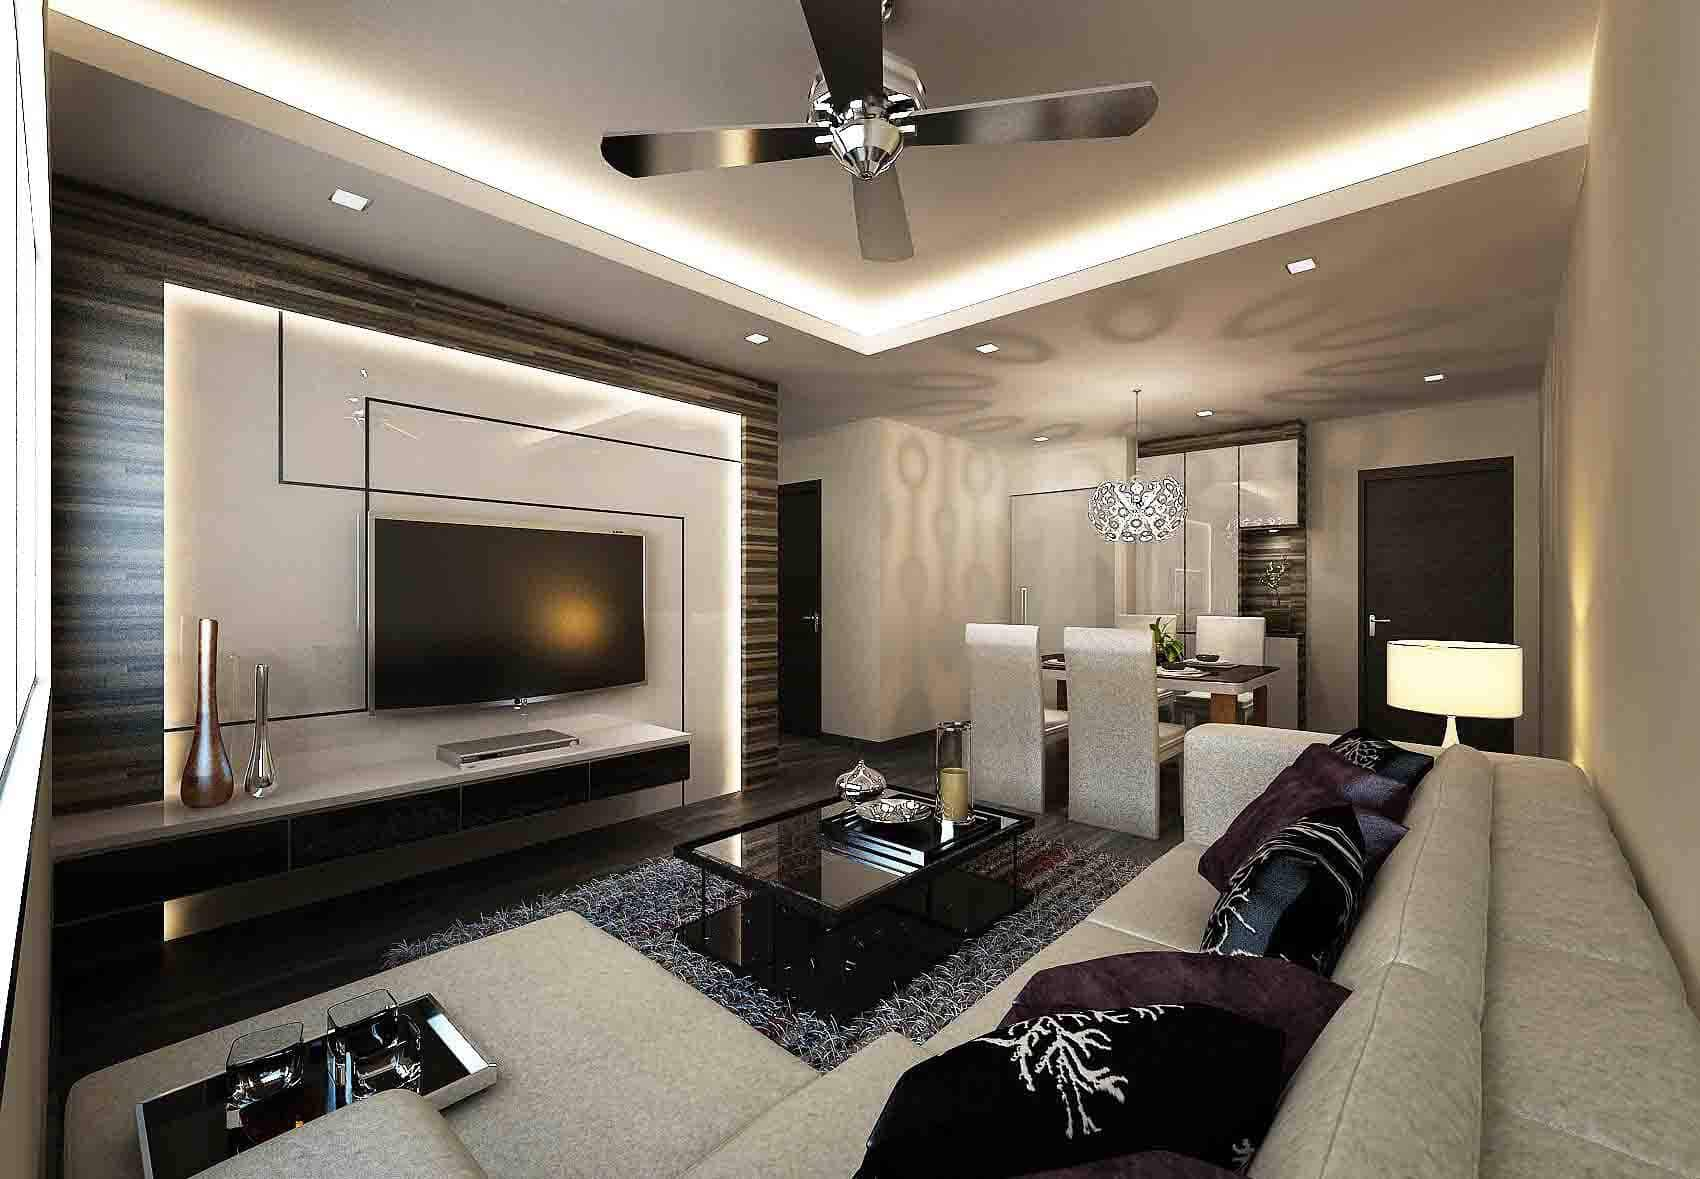 5 elements of a successful living room concept juz interior - Small living space design concept ...